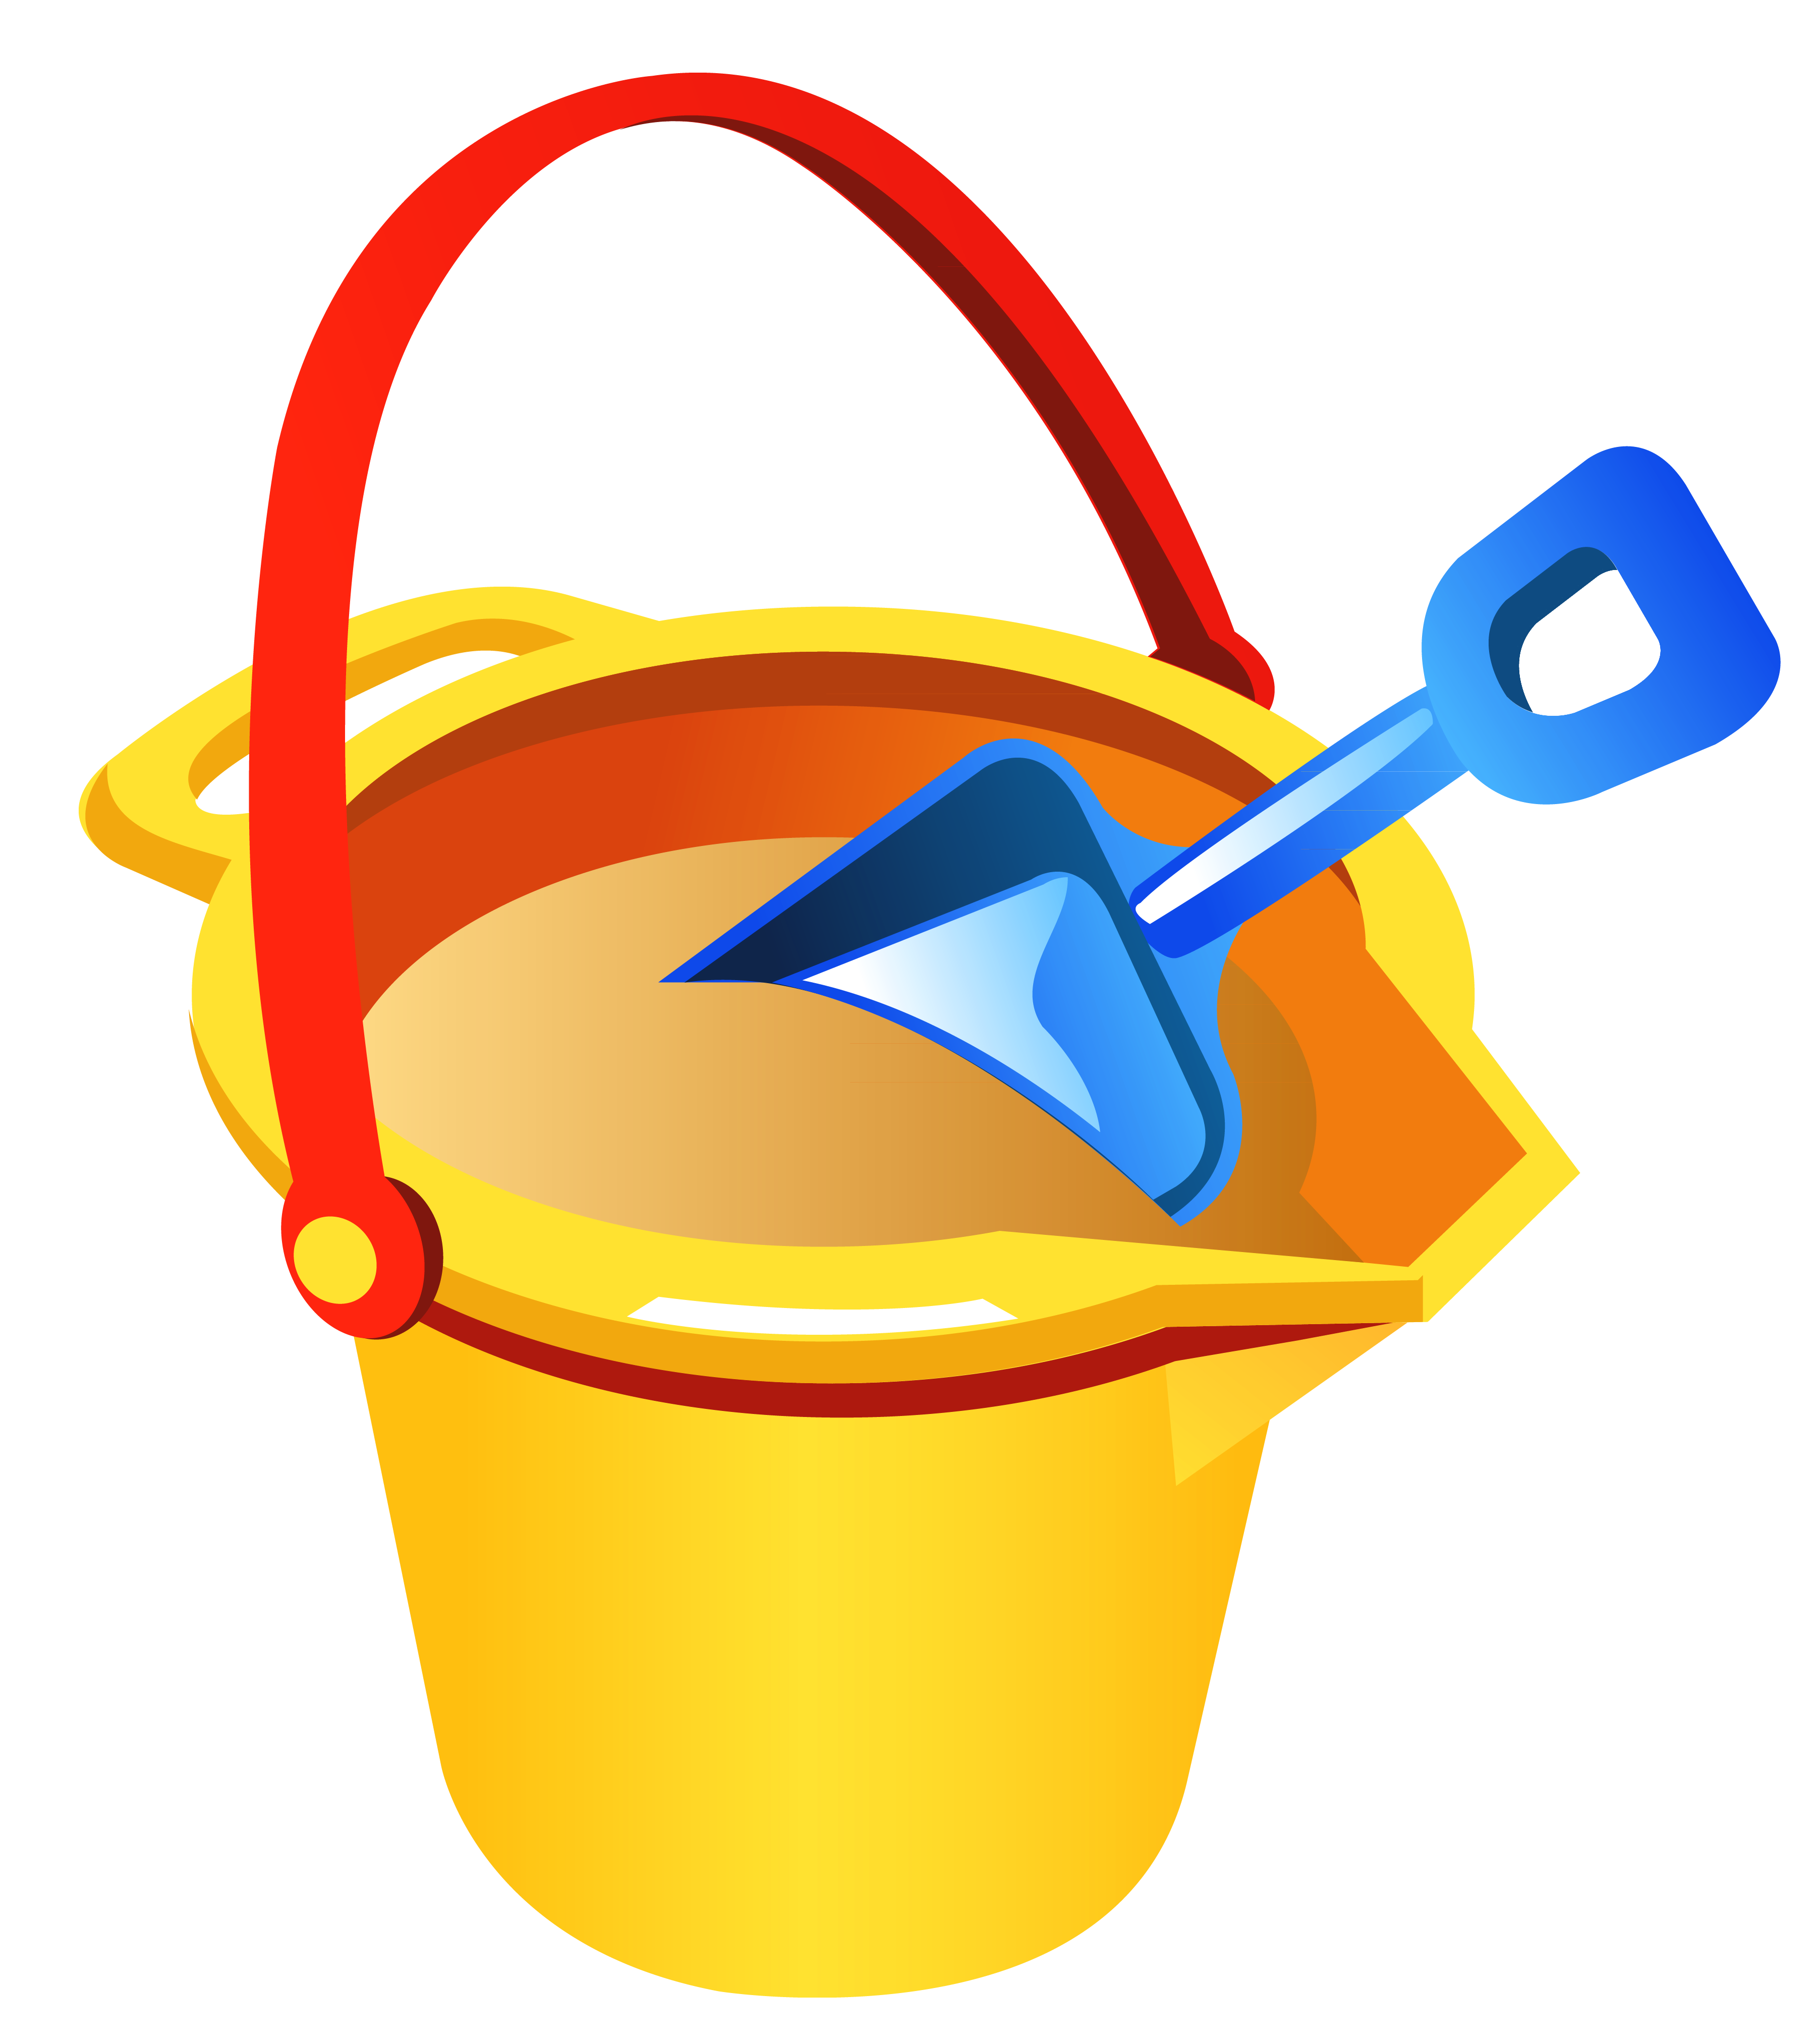 Beach Pail Png & Free Beach Pail.png Transparent Images.